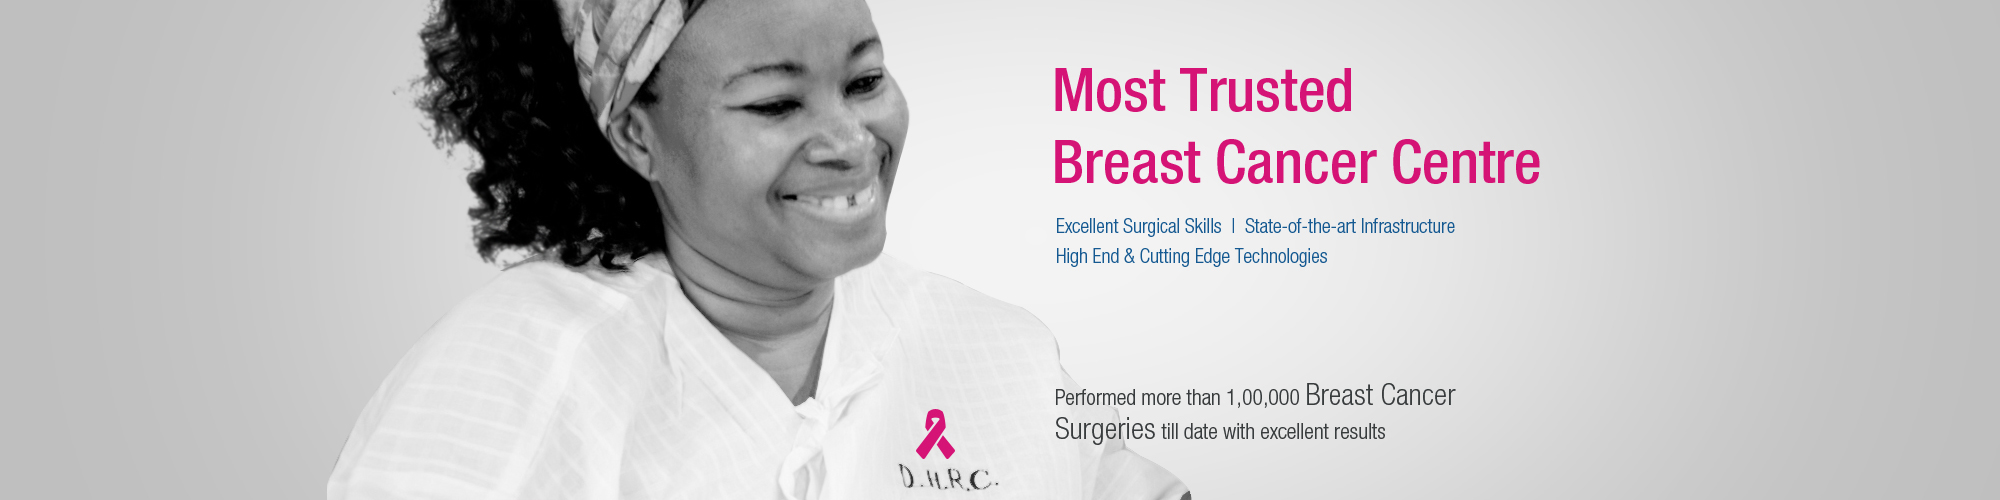 Best Cancer Hospital for breast cancer treatment, breast cancer surgery, breast cancer chemotherapy in Delhi India